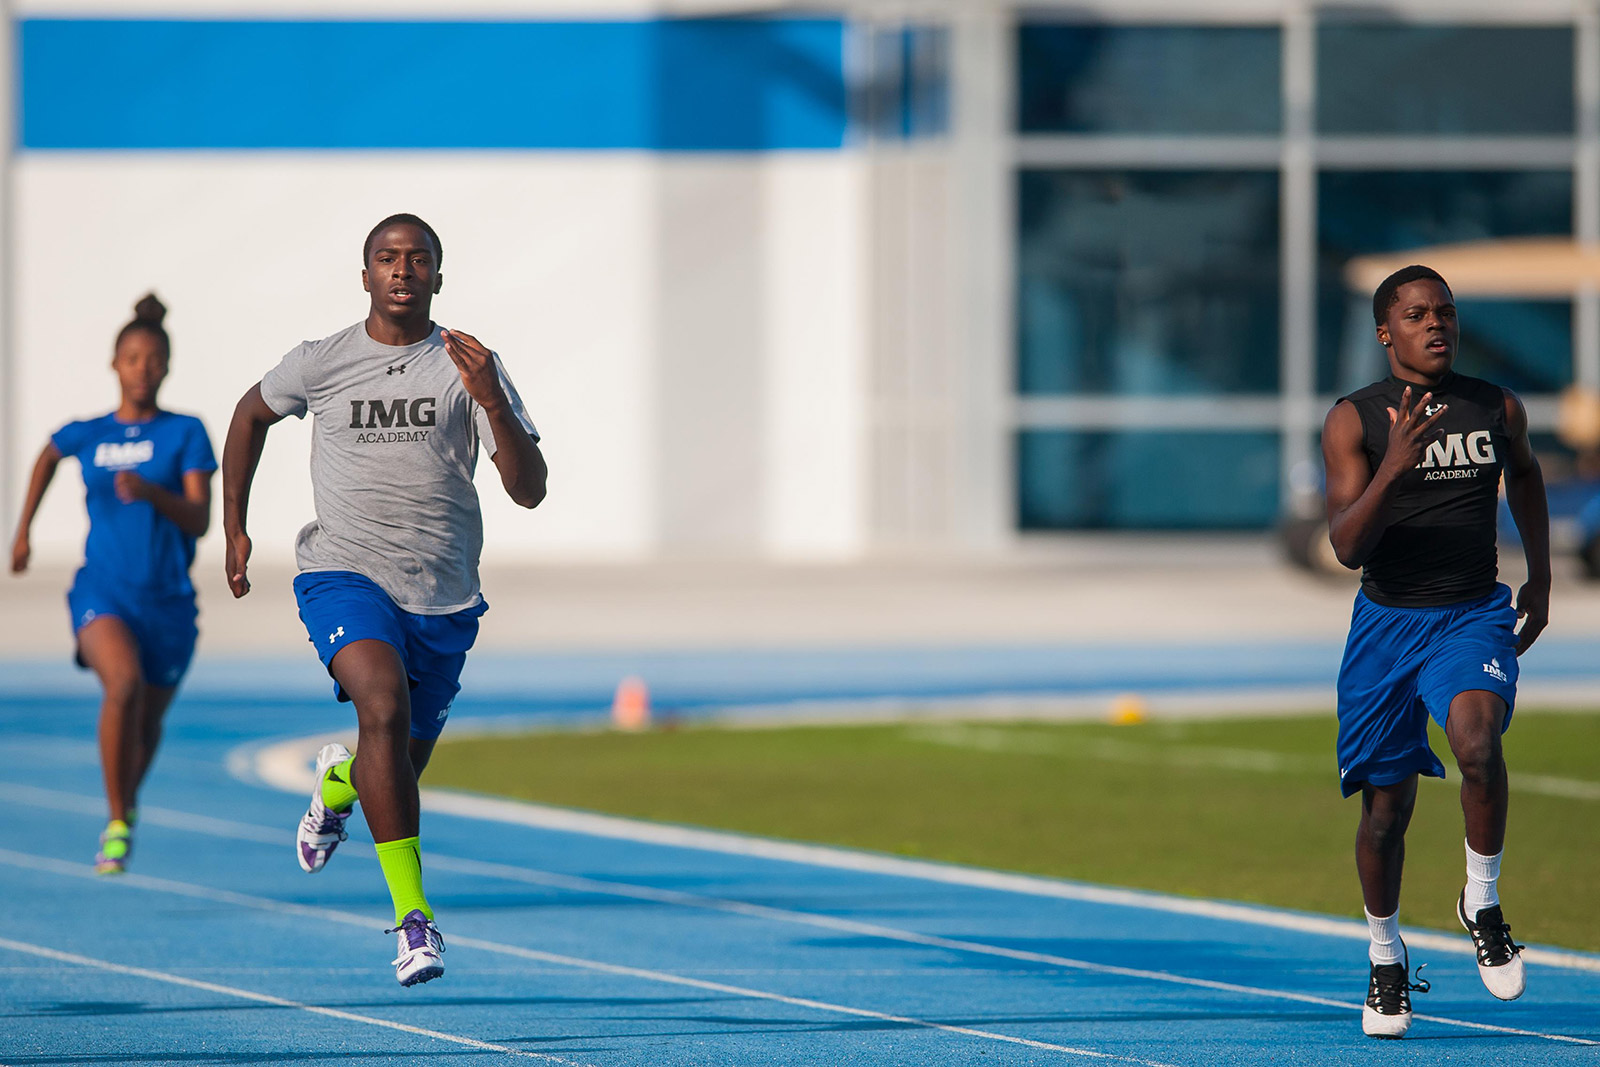 Track and Field Camps - Running Camps | IMG Academy 2019